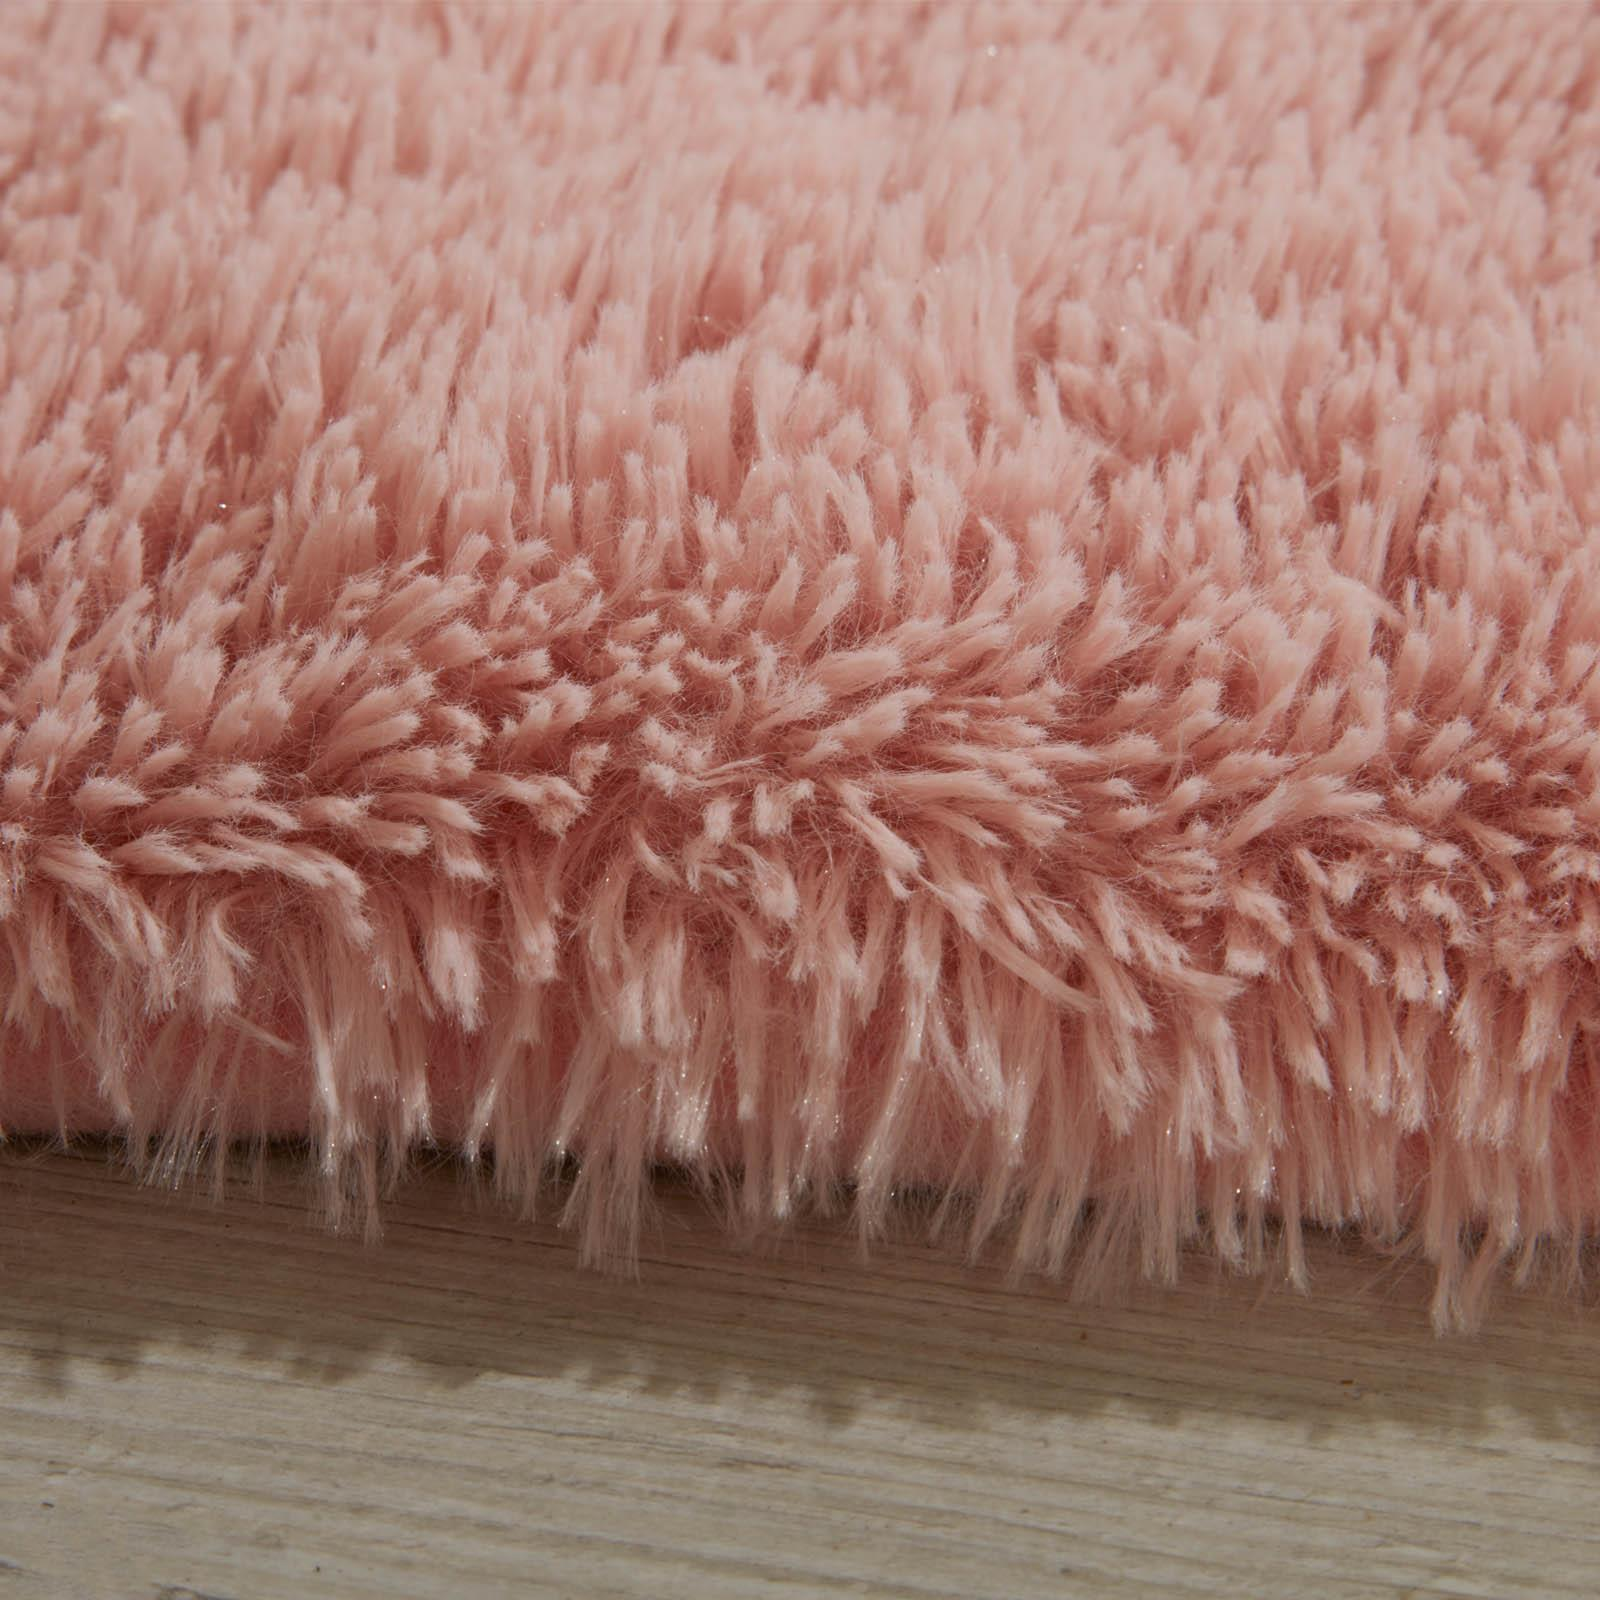 Sienna-Fluffy-Rug-Anti-Slip-Skid-Shaggy-Large-Bedroom-Non-Shed-Floor-Carpet-Mat thumbnail 7